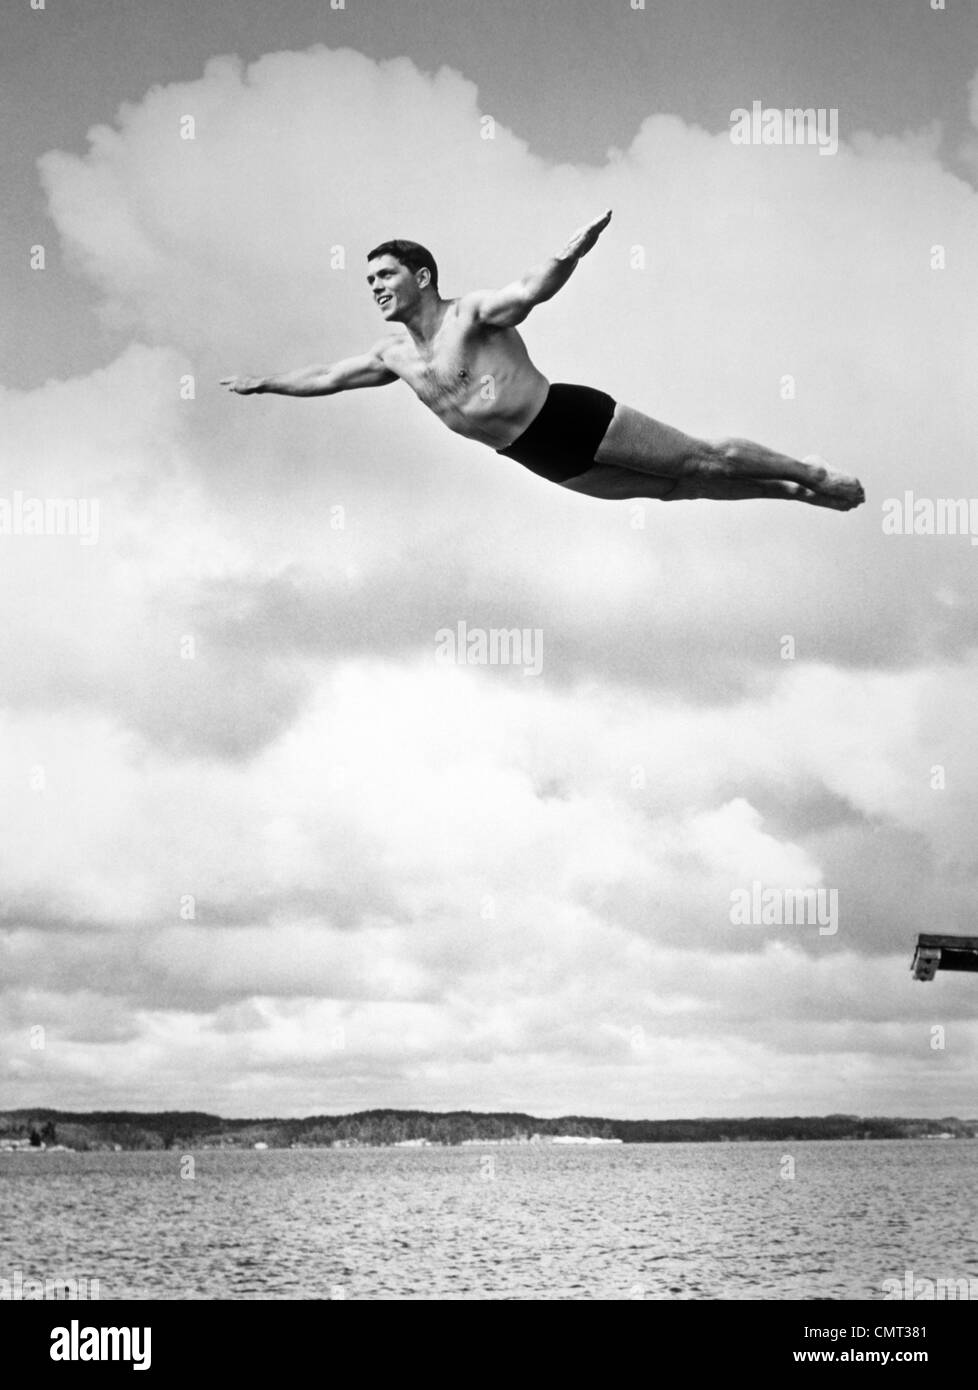 1930s MAN SWAN DIVING FROM HIGH DIVING BOARD OUTDOOR - Stock Image